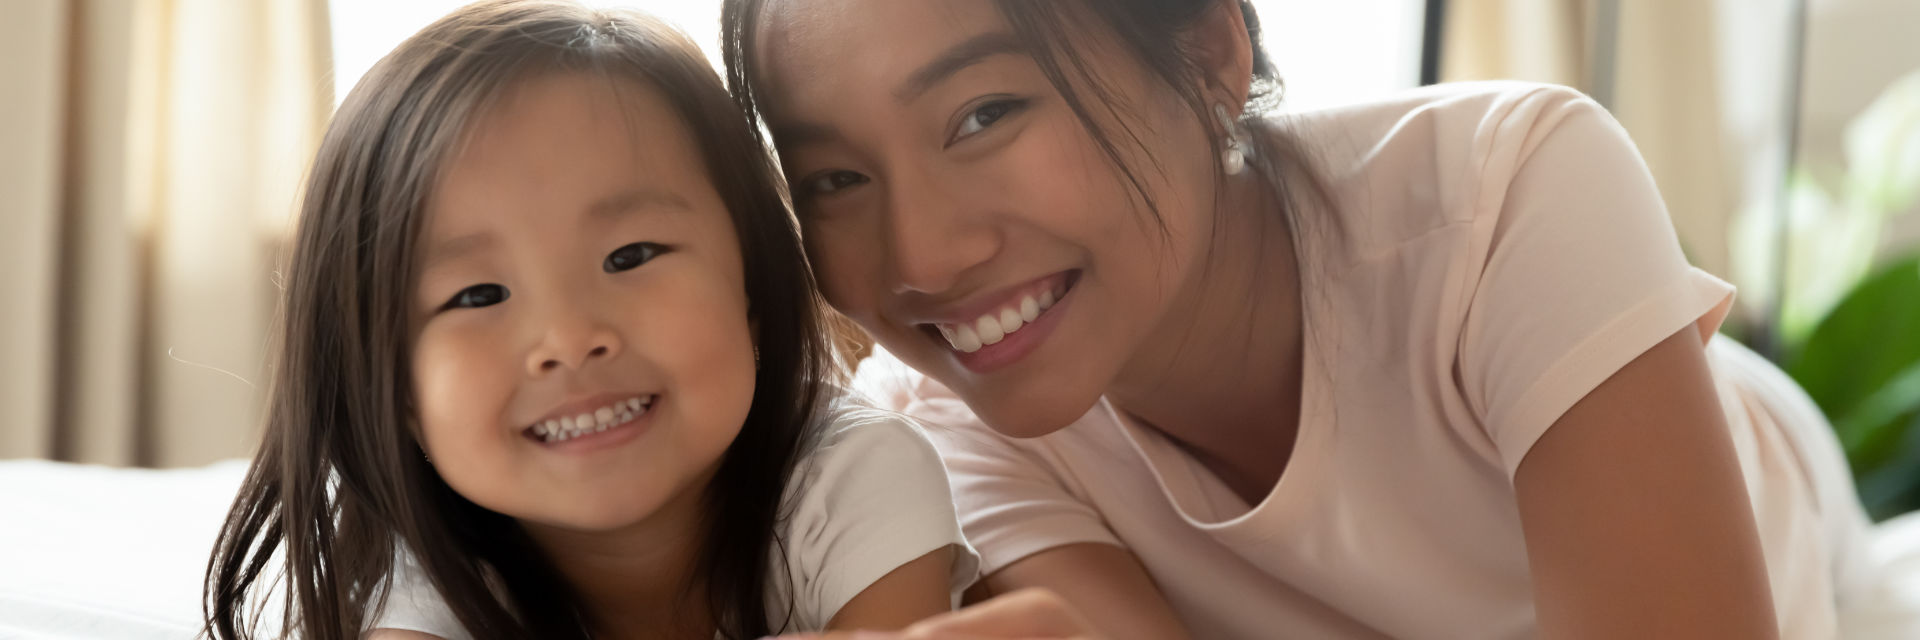 A happy Asian woman and her little daughter showing nice teeth in their smiles.